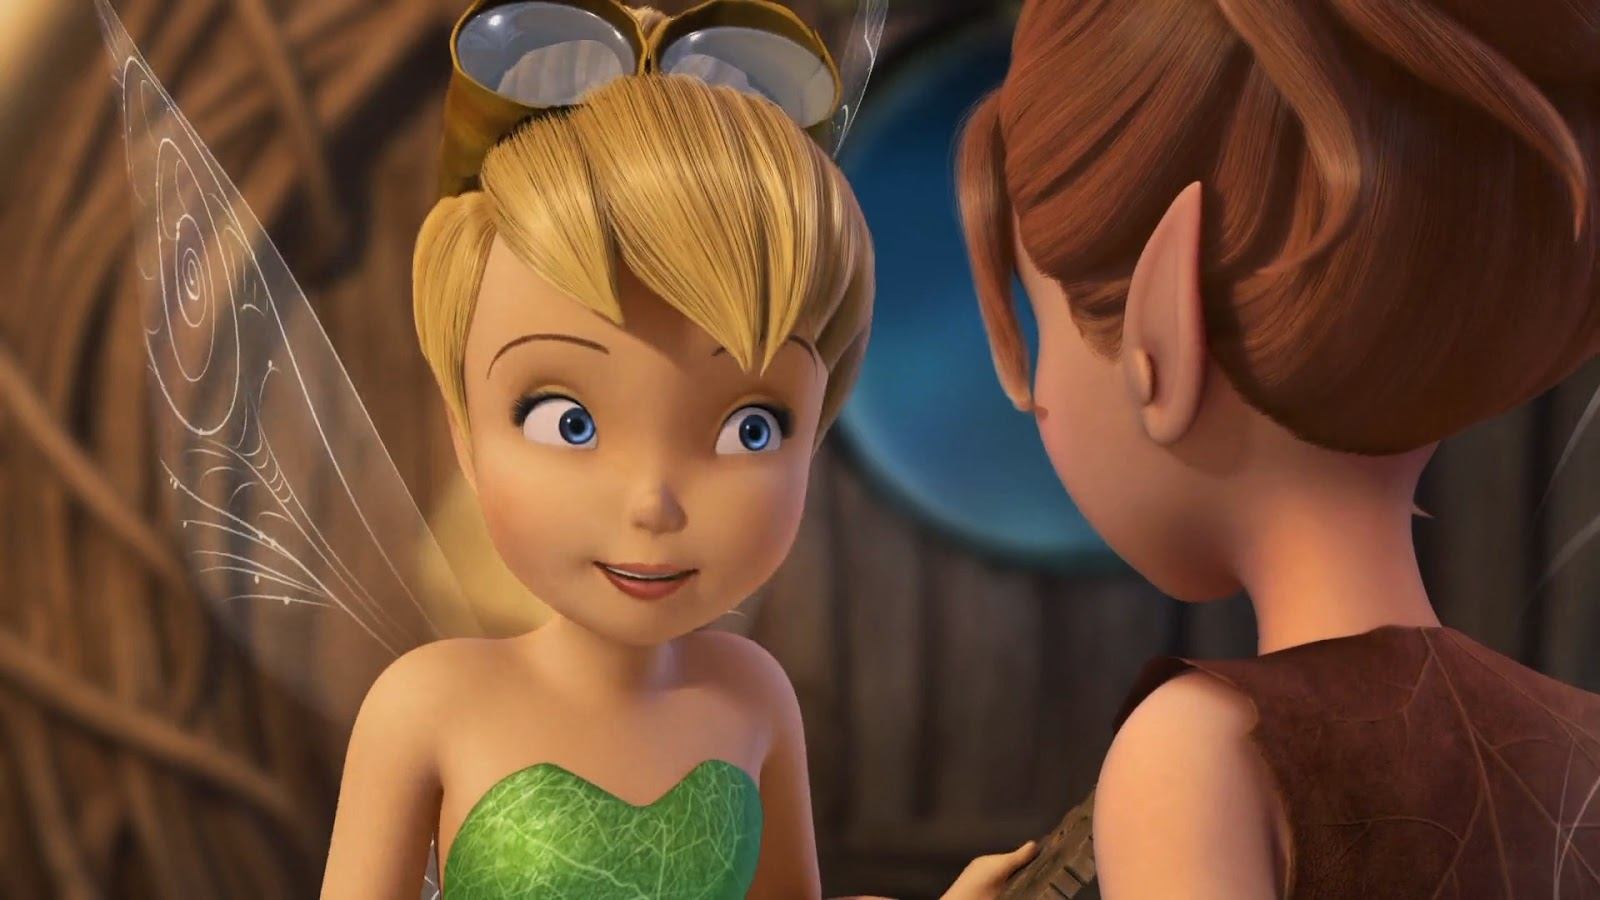 Tinker Bell And The Pirate Fairy (2014) S2 s Tinker Bell And The Pirate Fairy (2014)